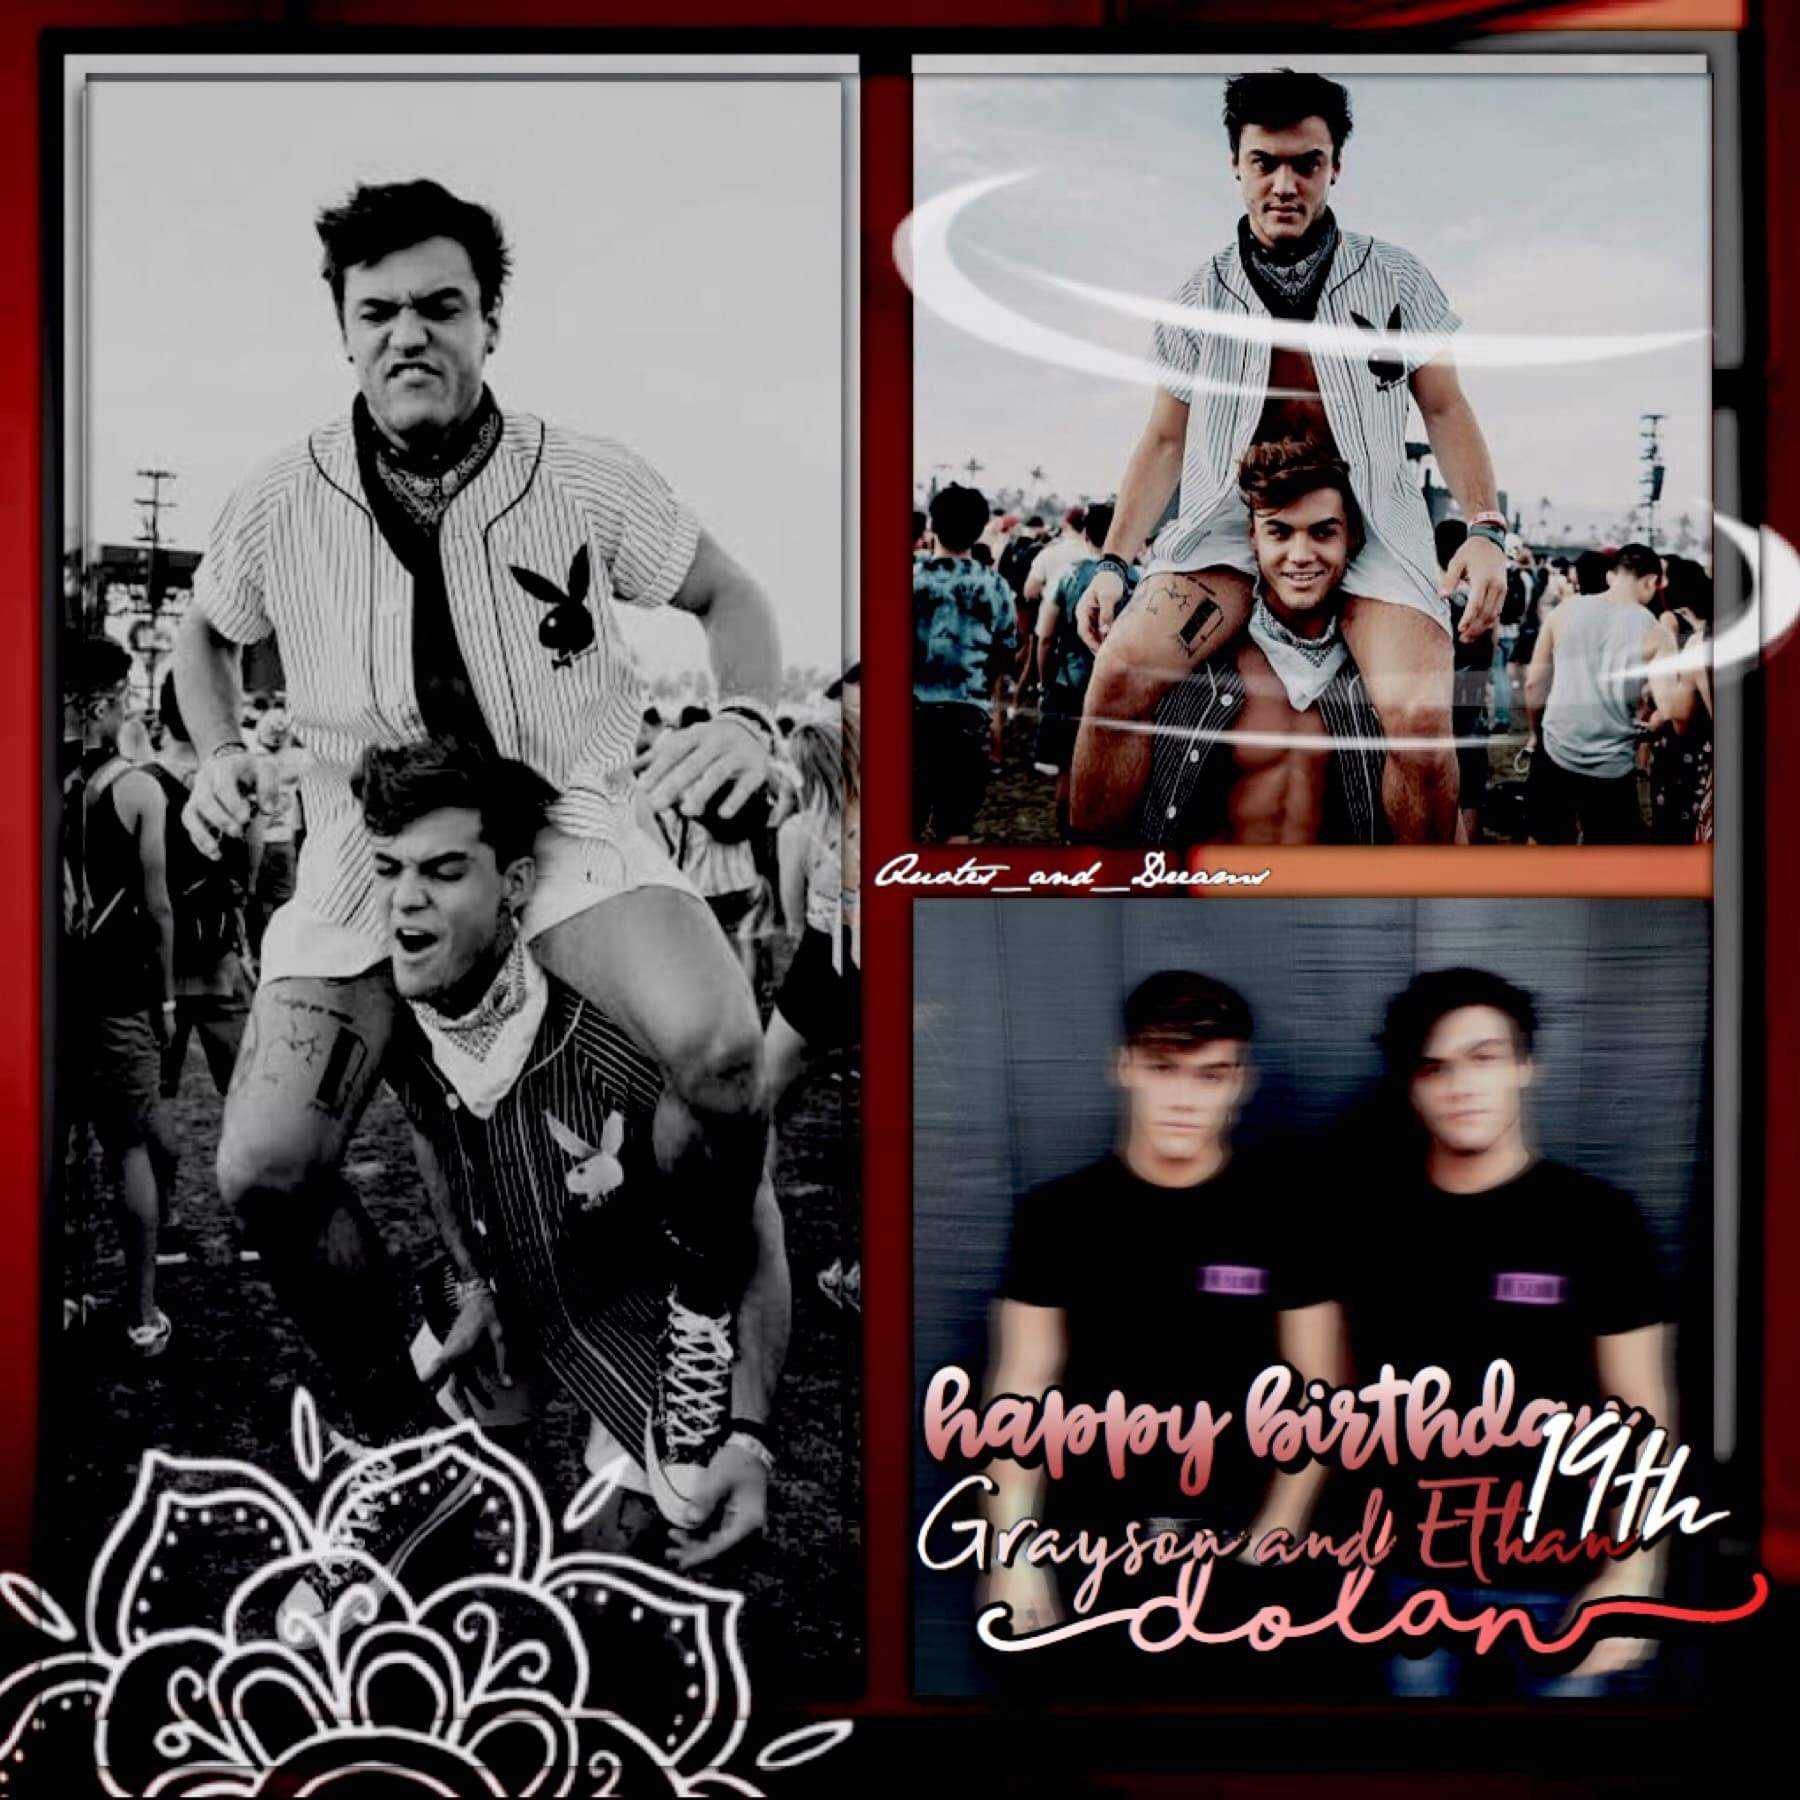 I KNOW IM LATE BUT HAPPY 19TH BIRTHDAY TO GRAYSON AND ETHAN DOLAN ❤️ love you guys 💕